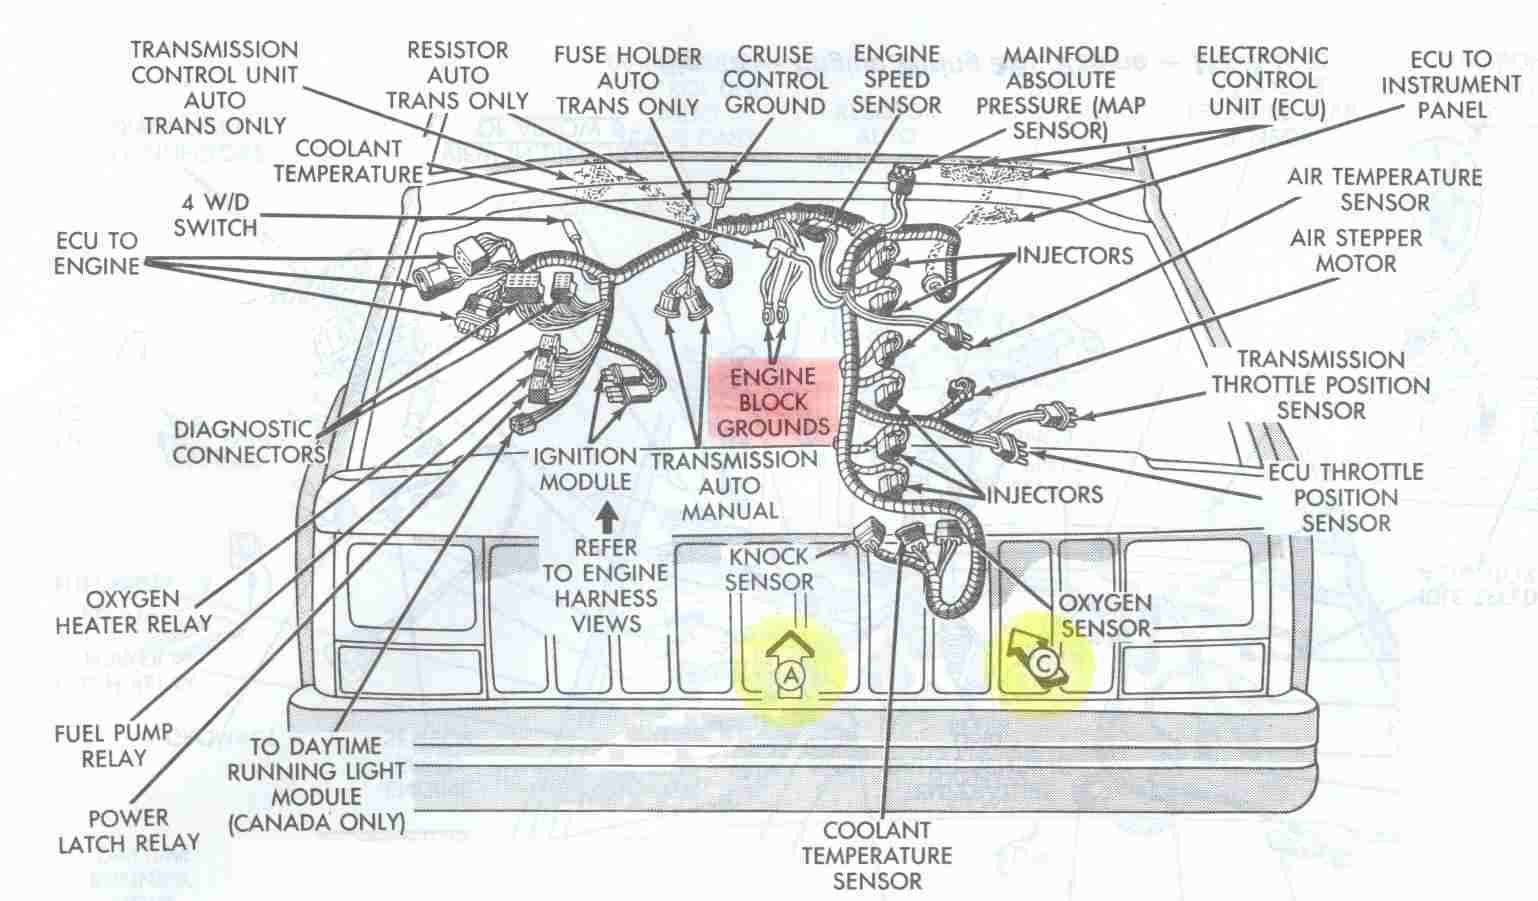 ab0134a7d9e021431187af597eb4aeca engine bay schematic showing major electrical ground points for 1996 jeep grand cherokee under hood fuse box at gsmx.co